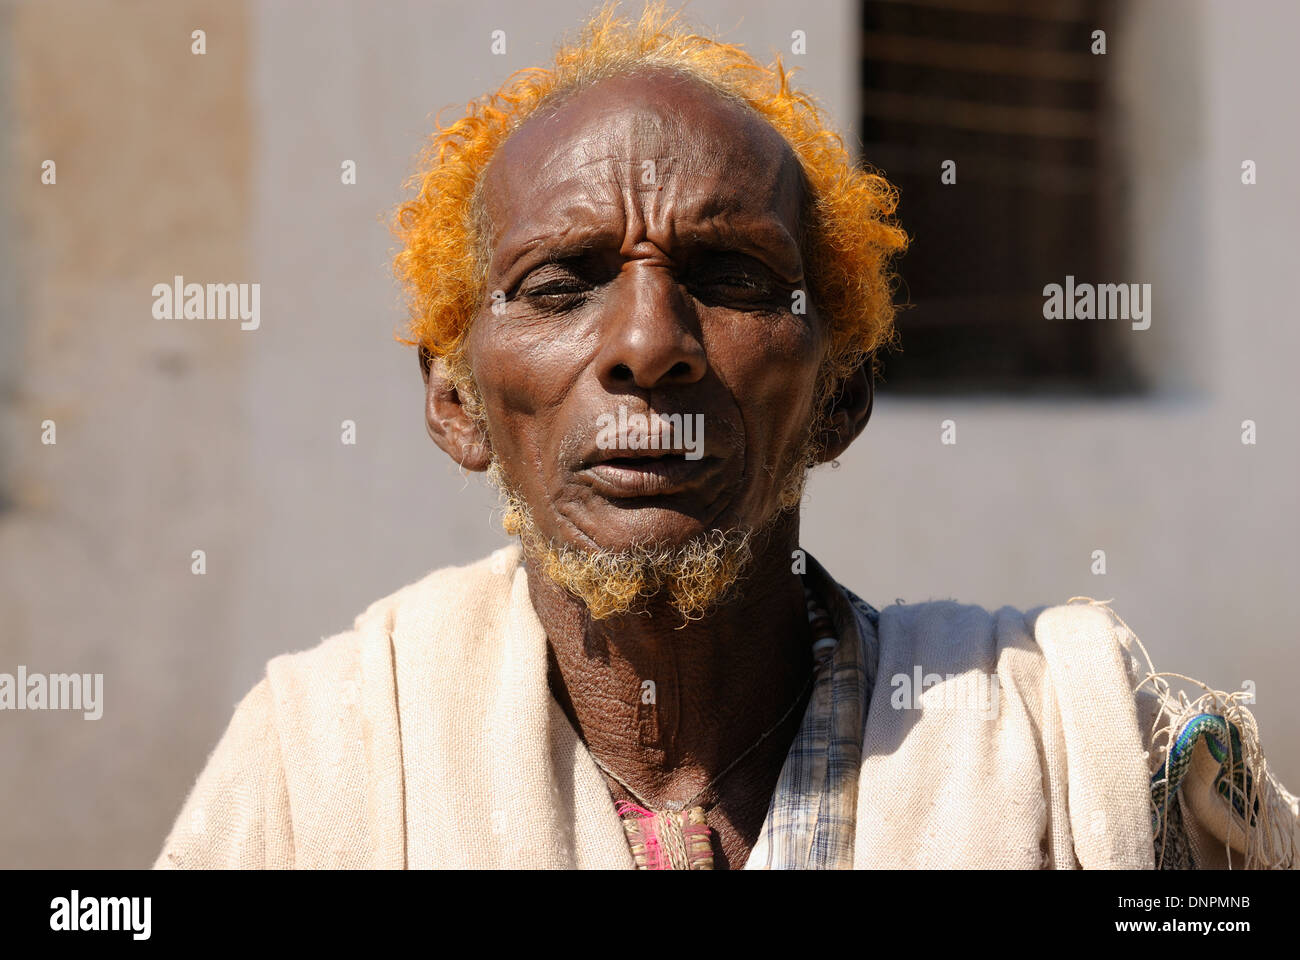 Issa man in Dikhil town in the south of Djibouti, Horn of Africa Stock Photo